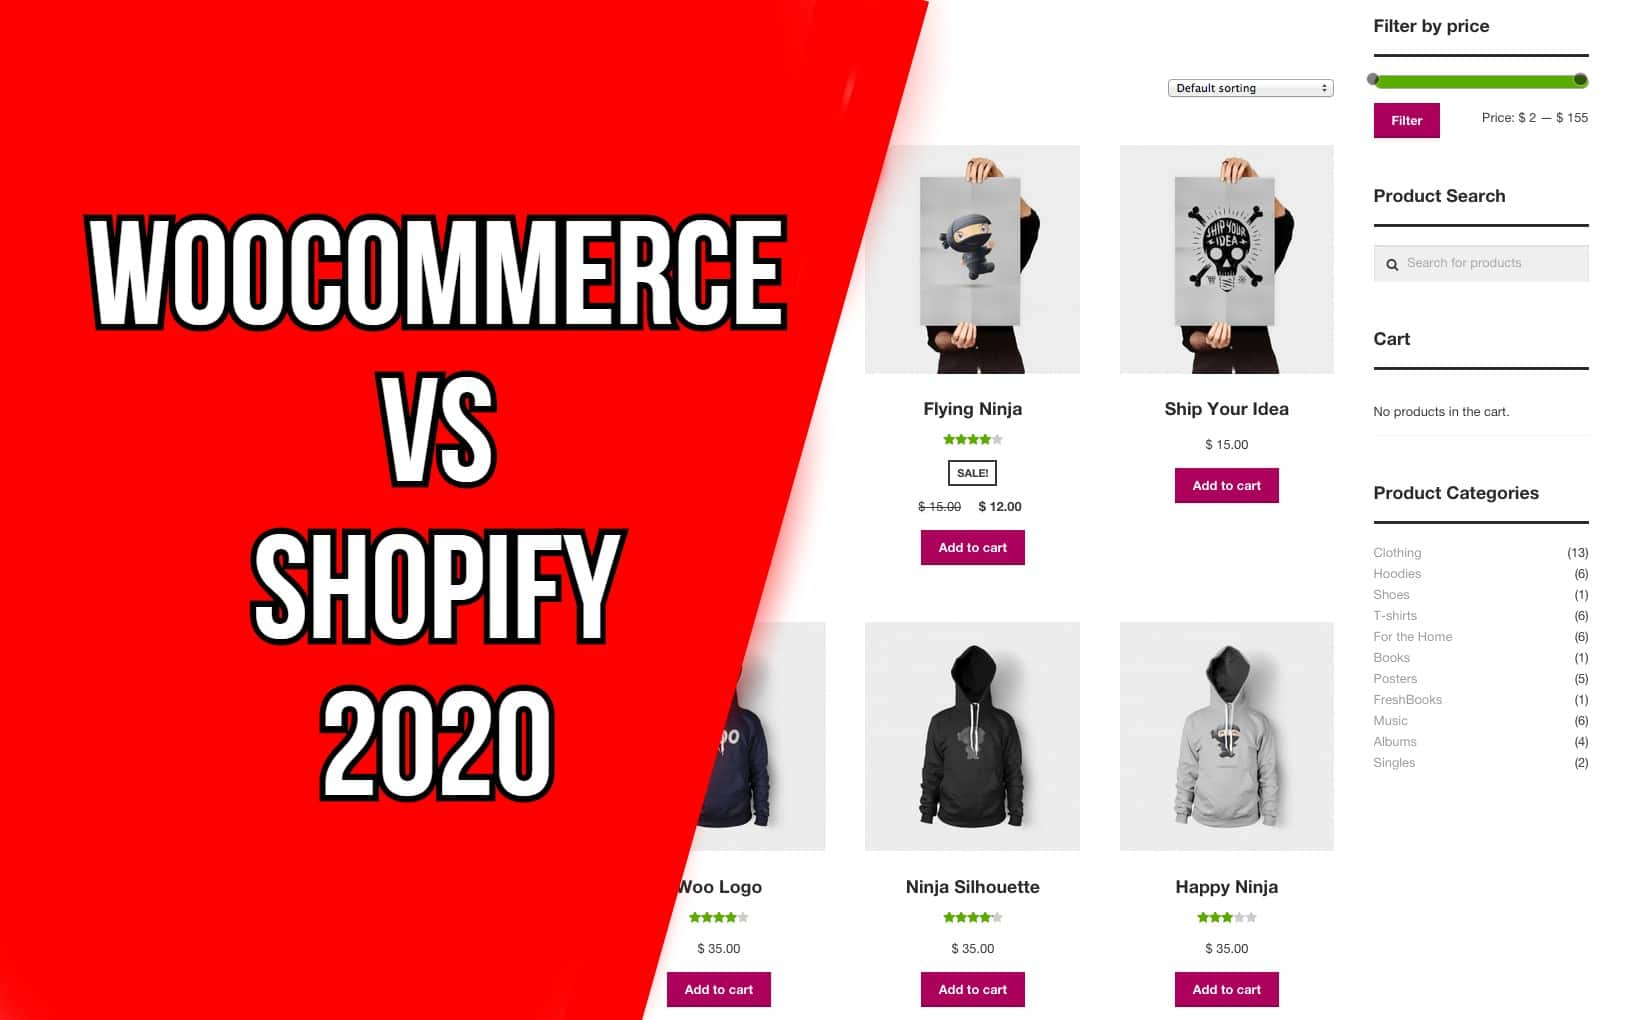 WooCommerce vs Shopify 2020